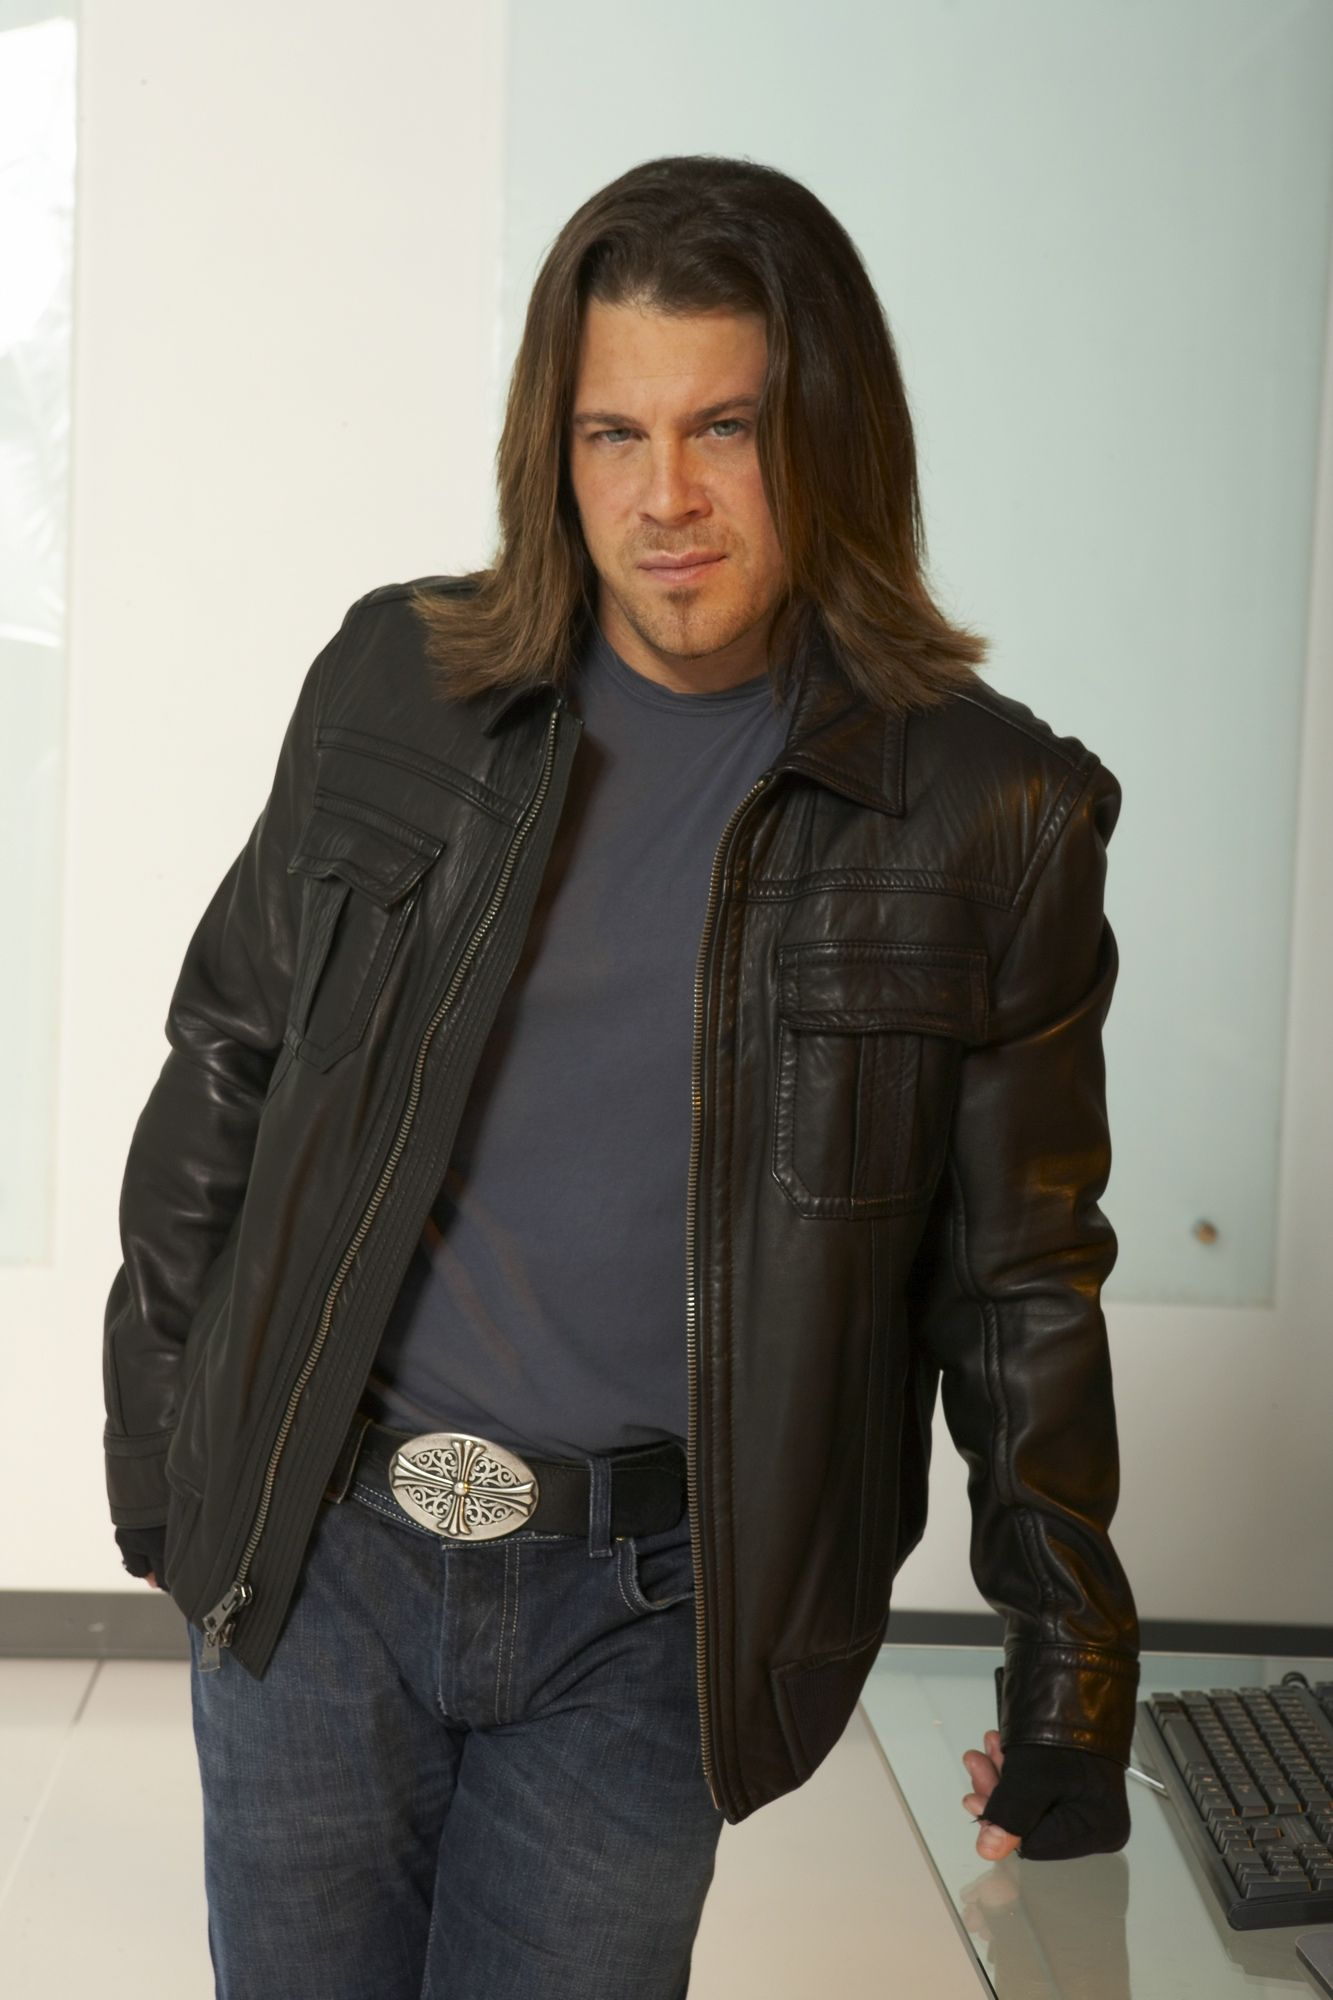 christian kane the house ruleschristian kane thinking of you, christian kane the house rules, christian kane lyrics, christian kane the house rules lyrics, christian kane eye colour, christian kane wife, christian kane movies, christian kane different kind of knight lyrics, christian kane actor, christian kane wiki, christian kane family, christian kane clayne crawford, christian kane angel, christian kane let me go, christian kane thinking of you download, christian kane instagram, christian kane thinking of you chords, christian kane thinking of you перевод, christian kane different kind of knight, christian kane thinking of you скачать